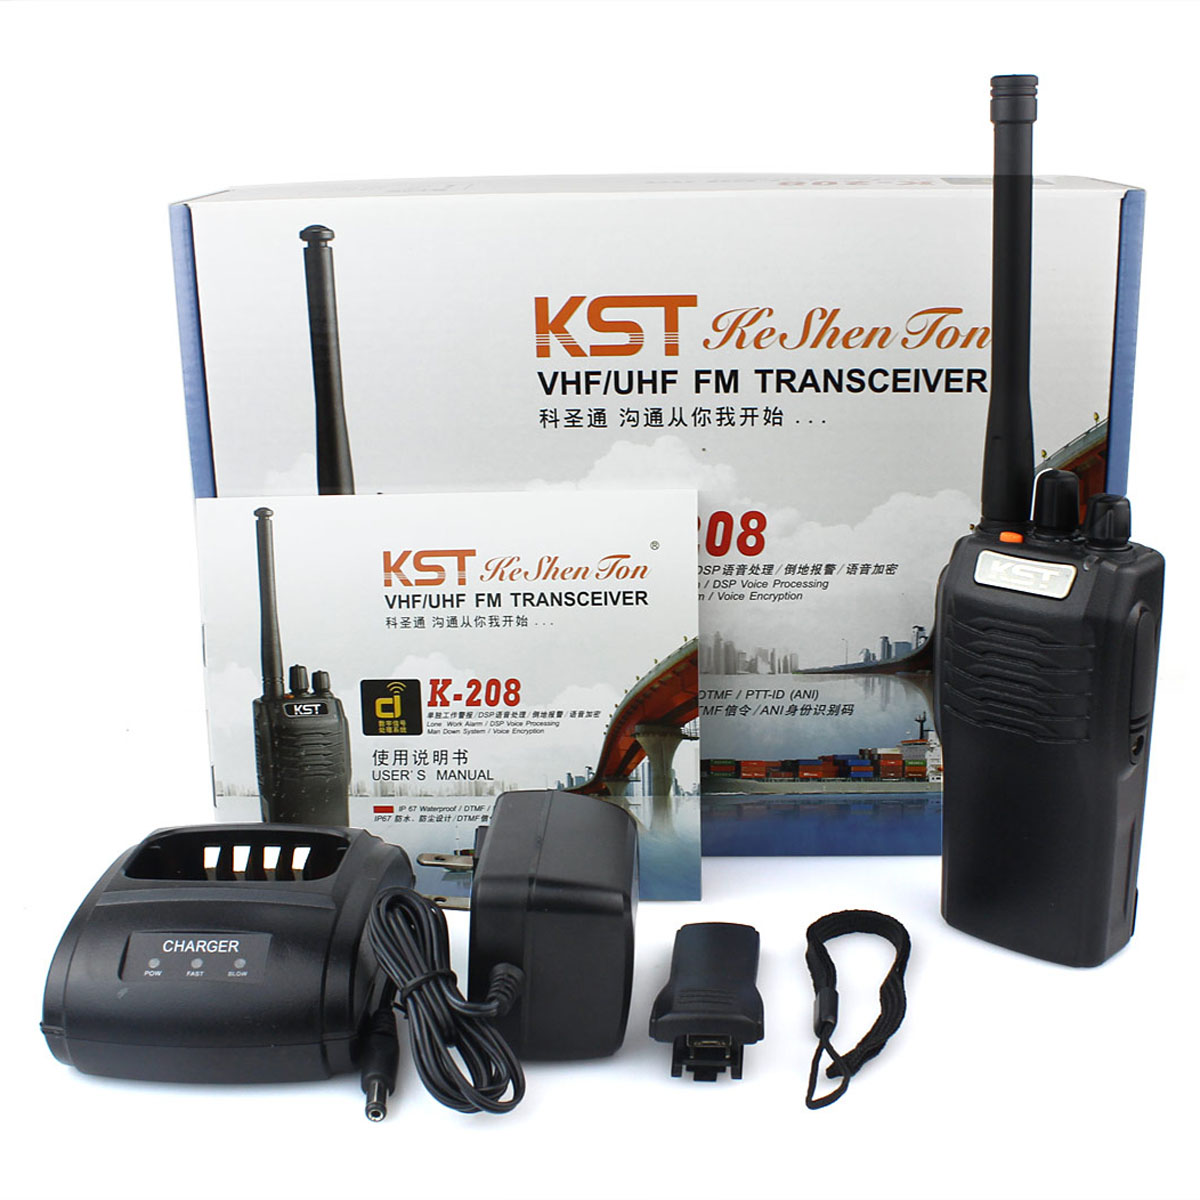 New Black KST <strong>K</strong>-208 Radio 8W <strong>16</strong> Memory CH 3000mAh UHF 400-470MHz DTMF VOX FM Waterproof IP67 Walkie Talkie